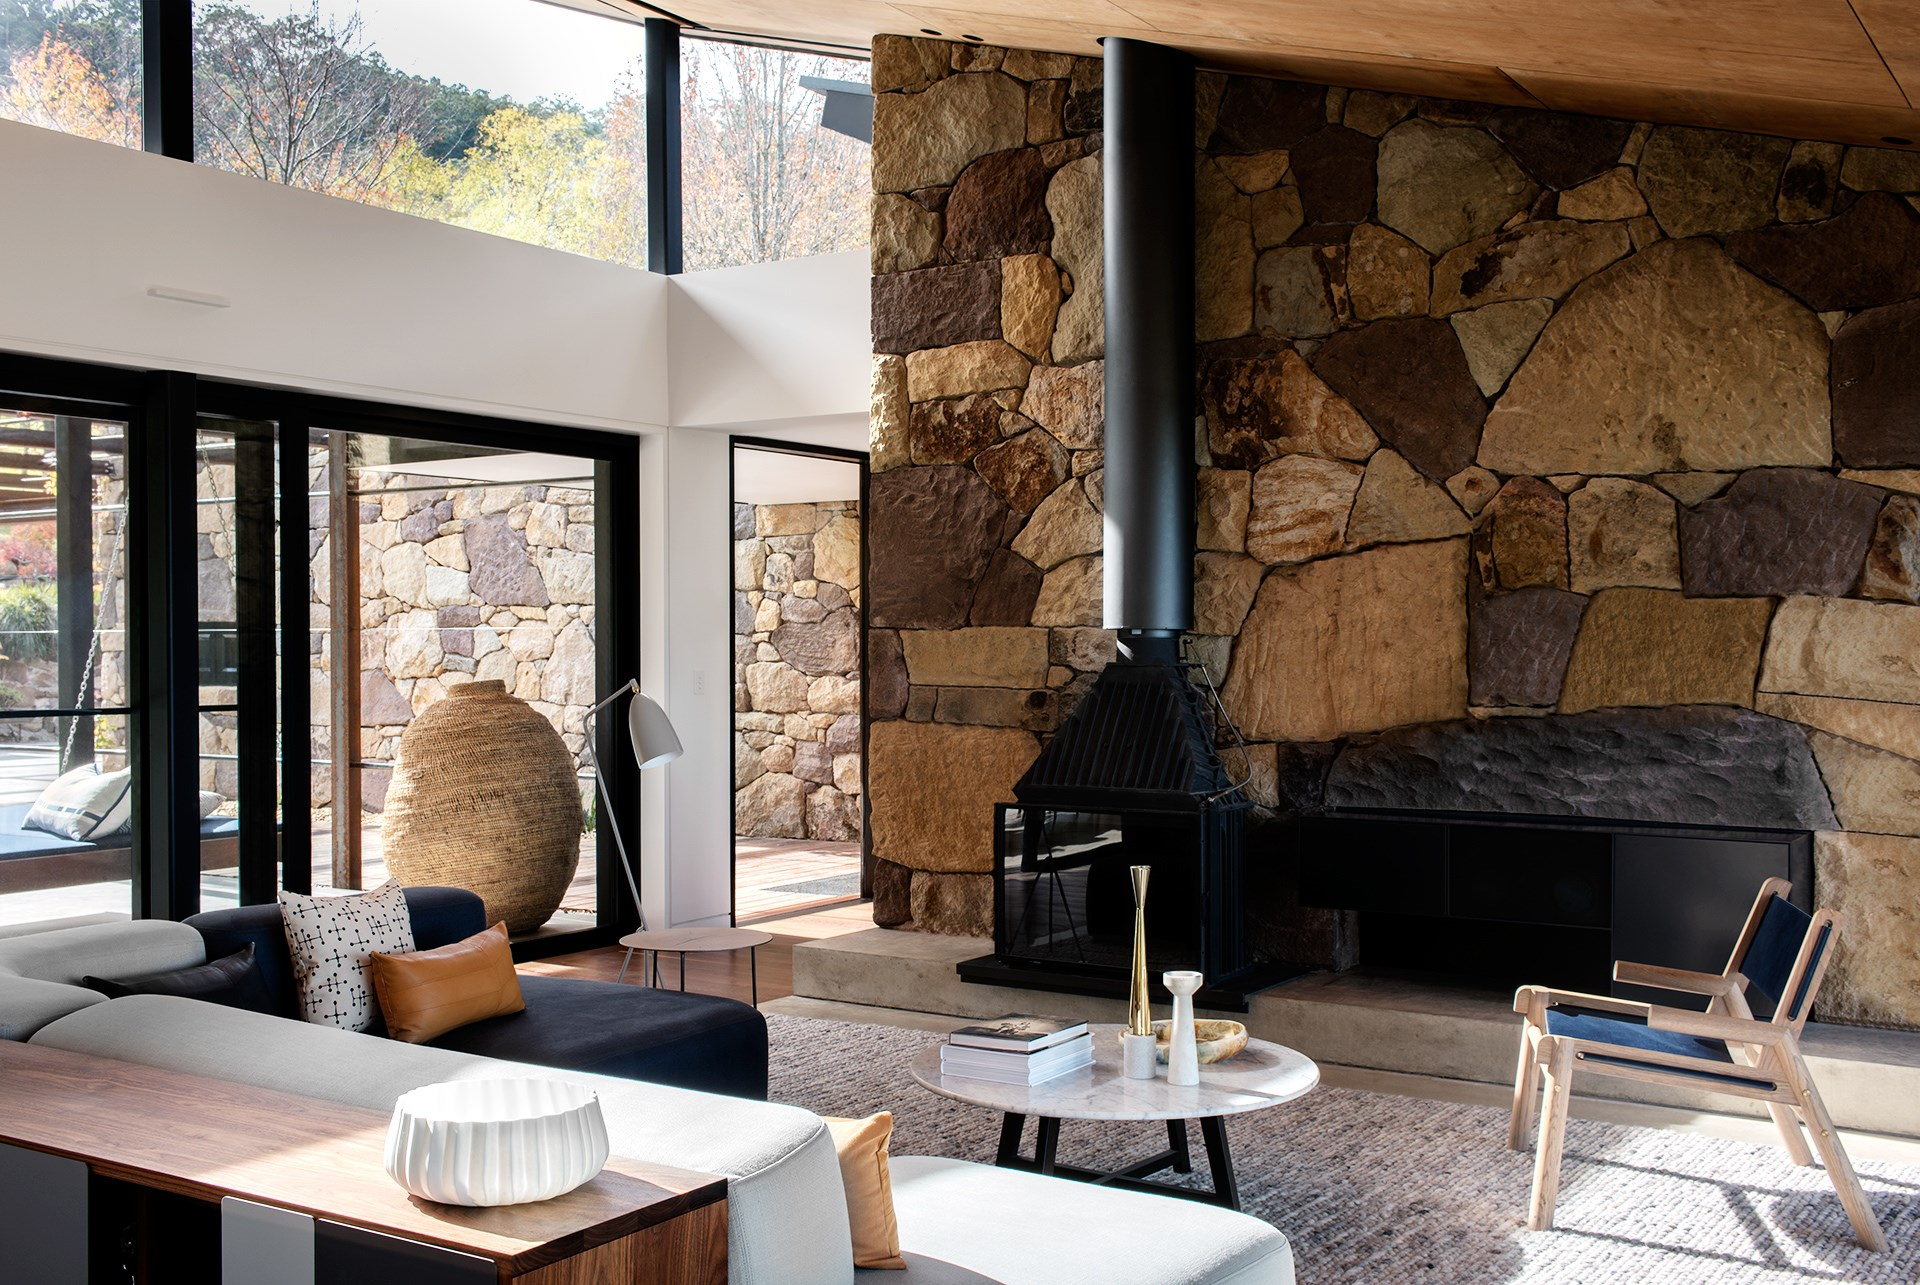 """The stone was quarried on site with bulldozers dispatched upwards to harvest """"car-sized chunks that had fallen off the escarpment"""", explains Ben of the beautifully crafted dry-stone walls by J&J Stonewall Constructions that back the pods and define the living room and outdoor dining spaces."""